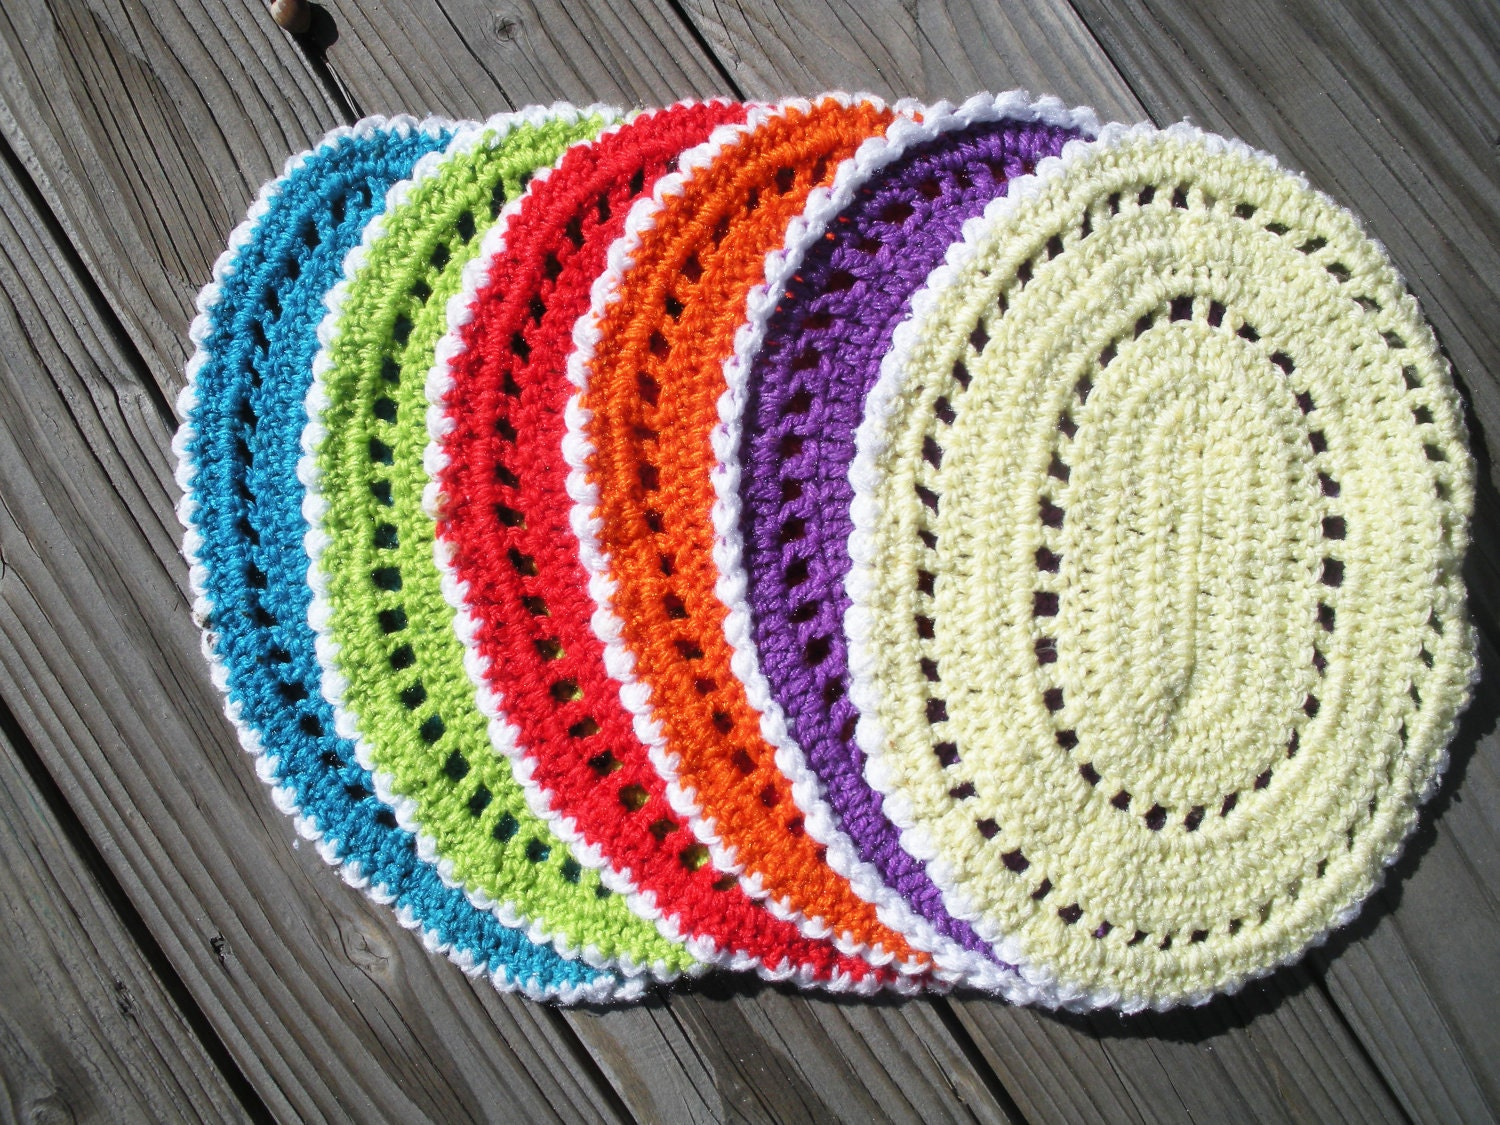 Crochet Pattern For Oval Placemat : Six 6 Bright Crocheted Oval Placemats by AirAndLove on Etsy